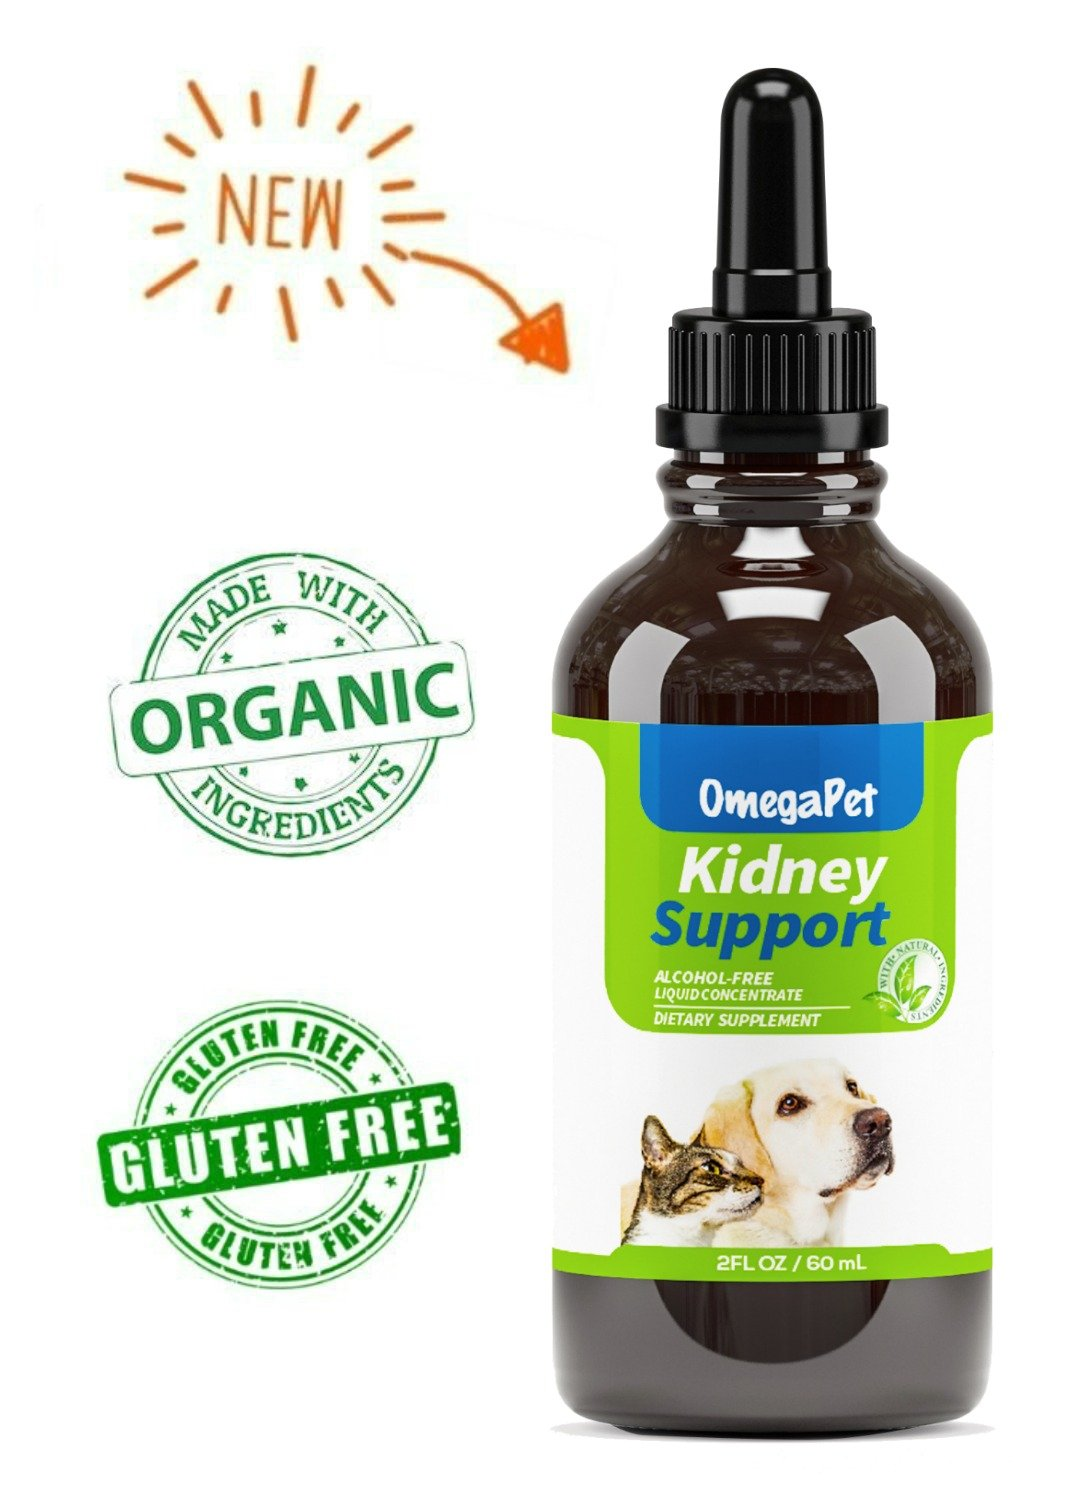 OmegaPet Dog Kidney Support, Kidney Support for Cats and Dogs, Bladder Support for Dogs, Best Natural Pet Kidney Care for Improved Appetite and Energy